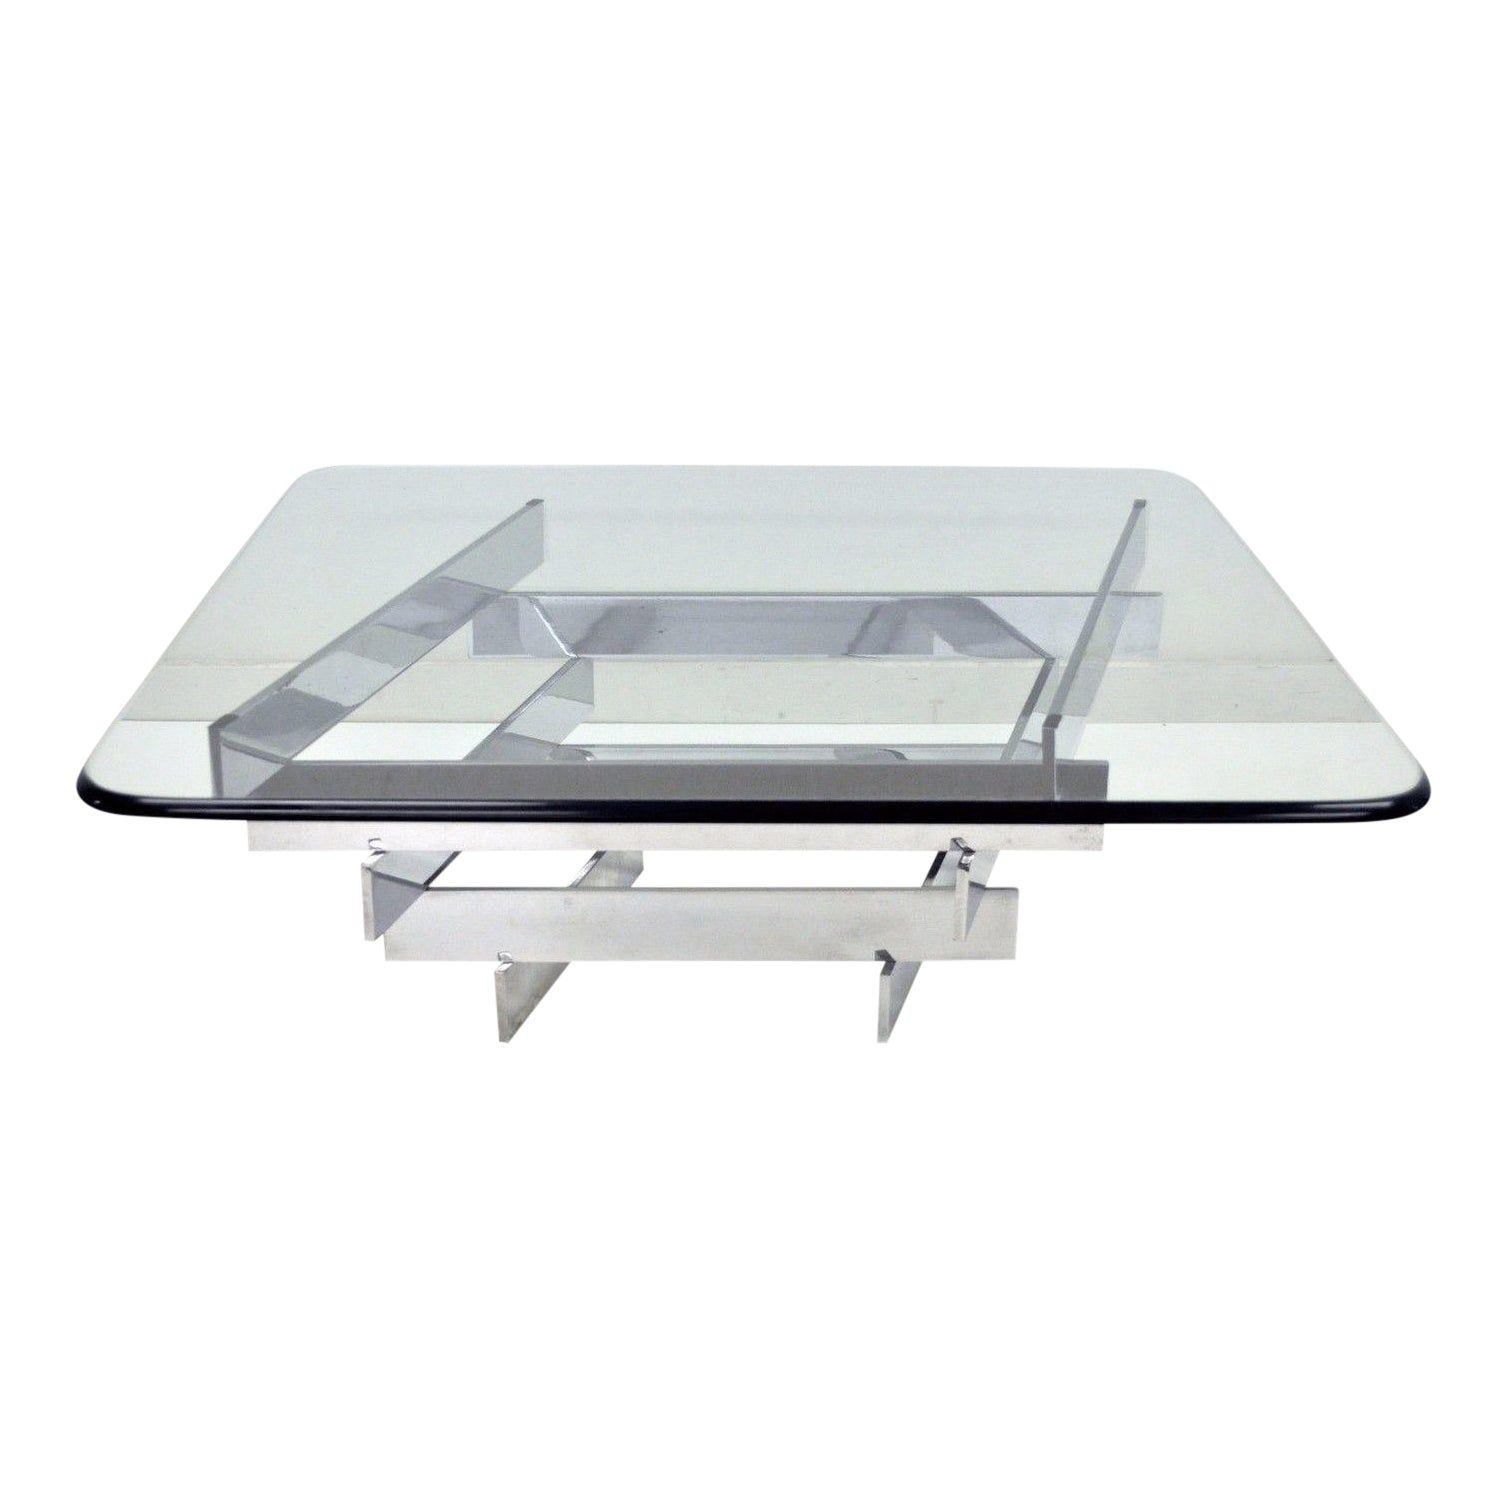 8c5e29e6313e8 Vintage Mid Century Modern Paul Mayen Habitat Chrome Stack Glass Coffee  Table